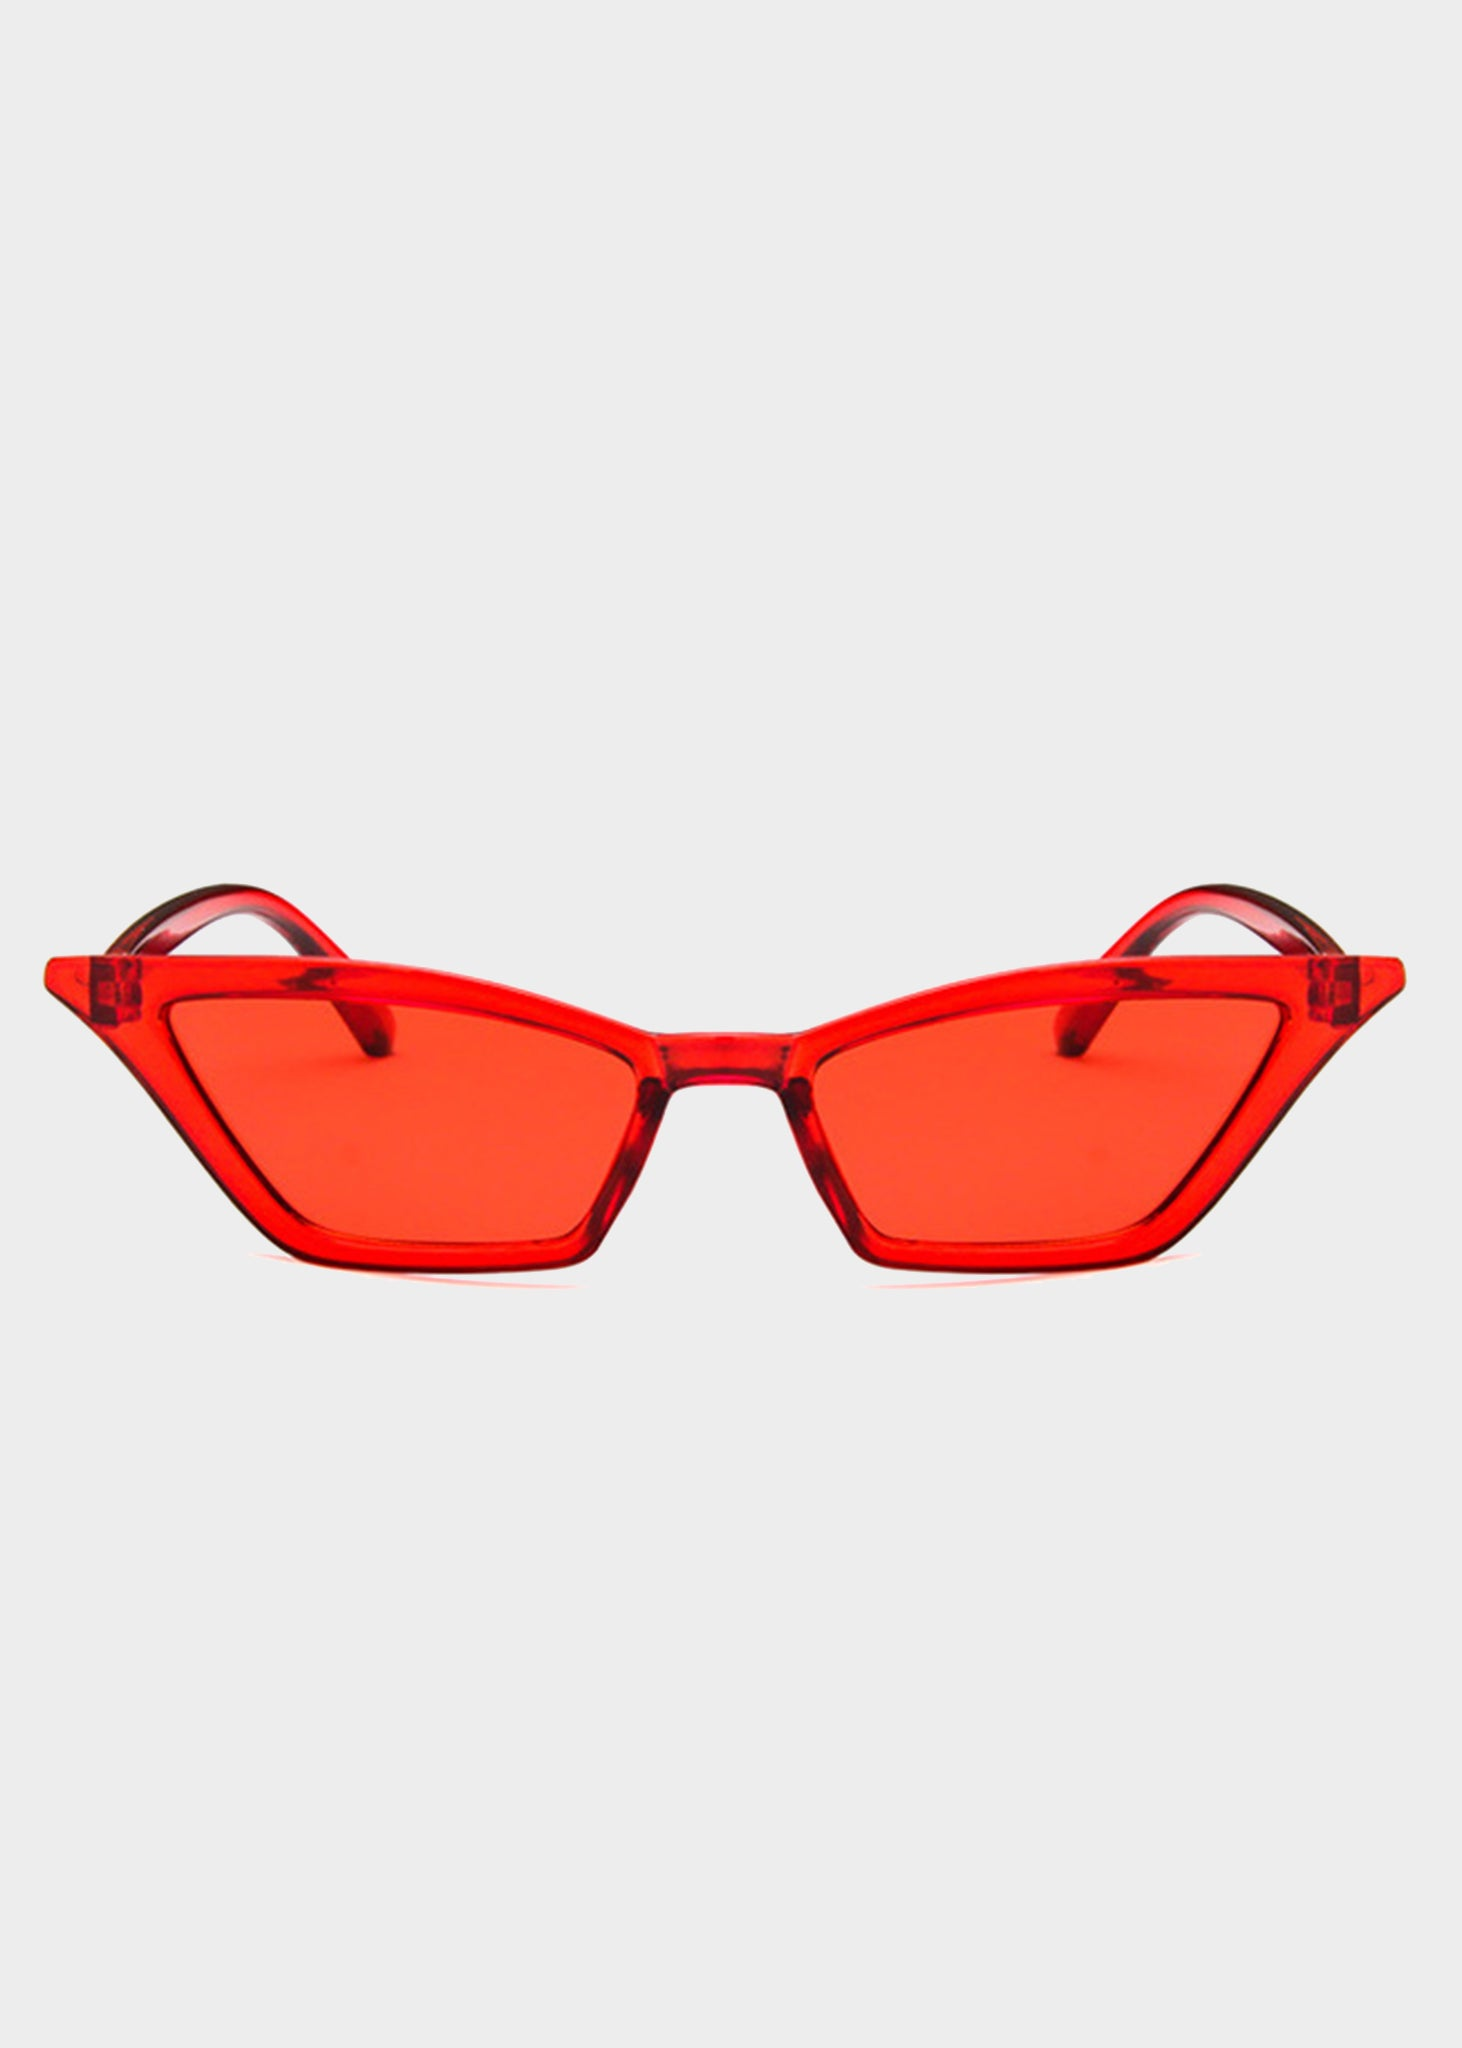 456fb3478a Red Tinted Small Cat Eye Sunglasses